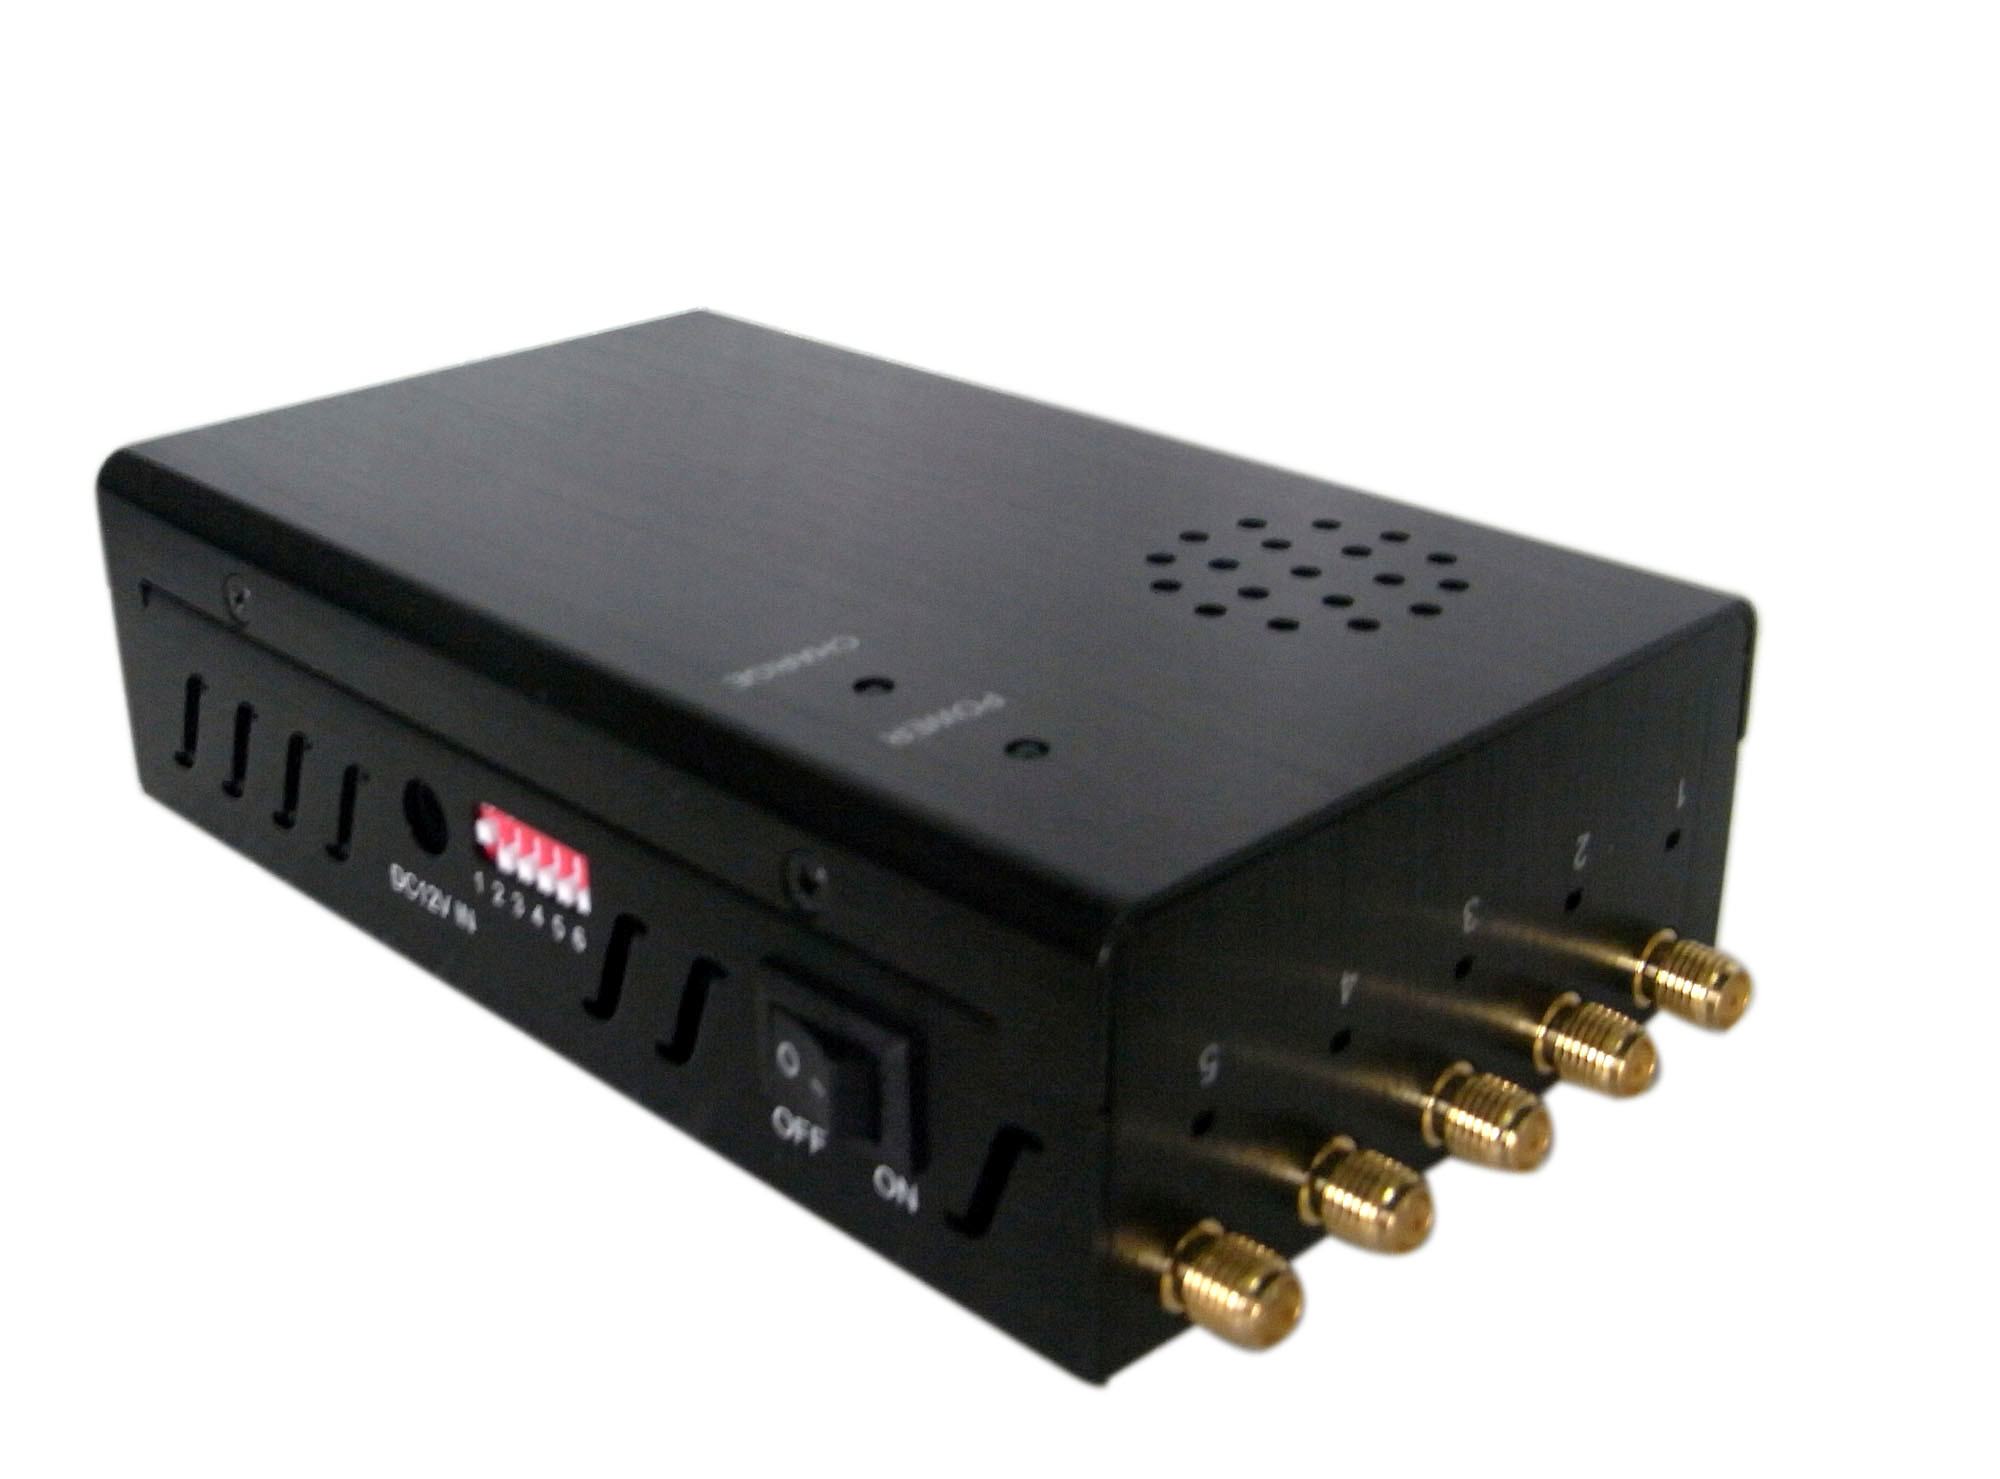 Cell phone jammer Carignan - cell phone jammer Newport